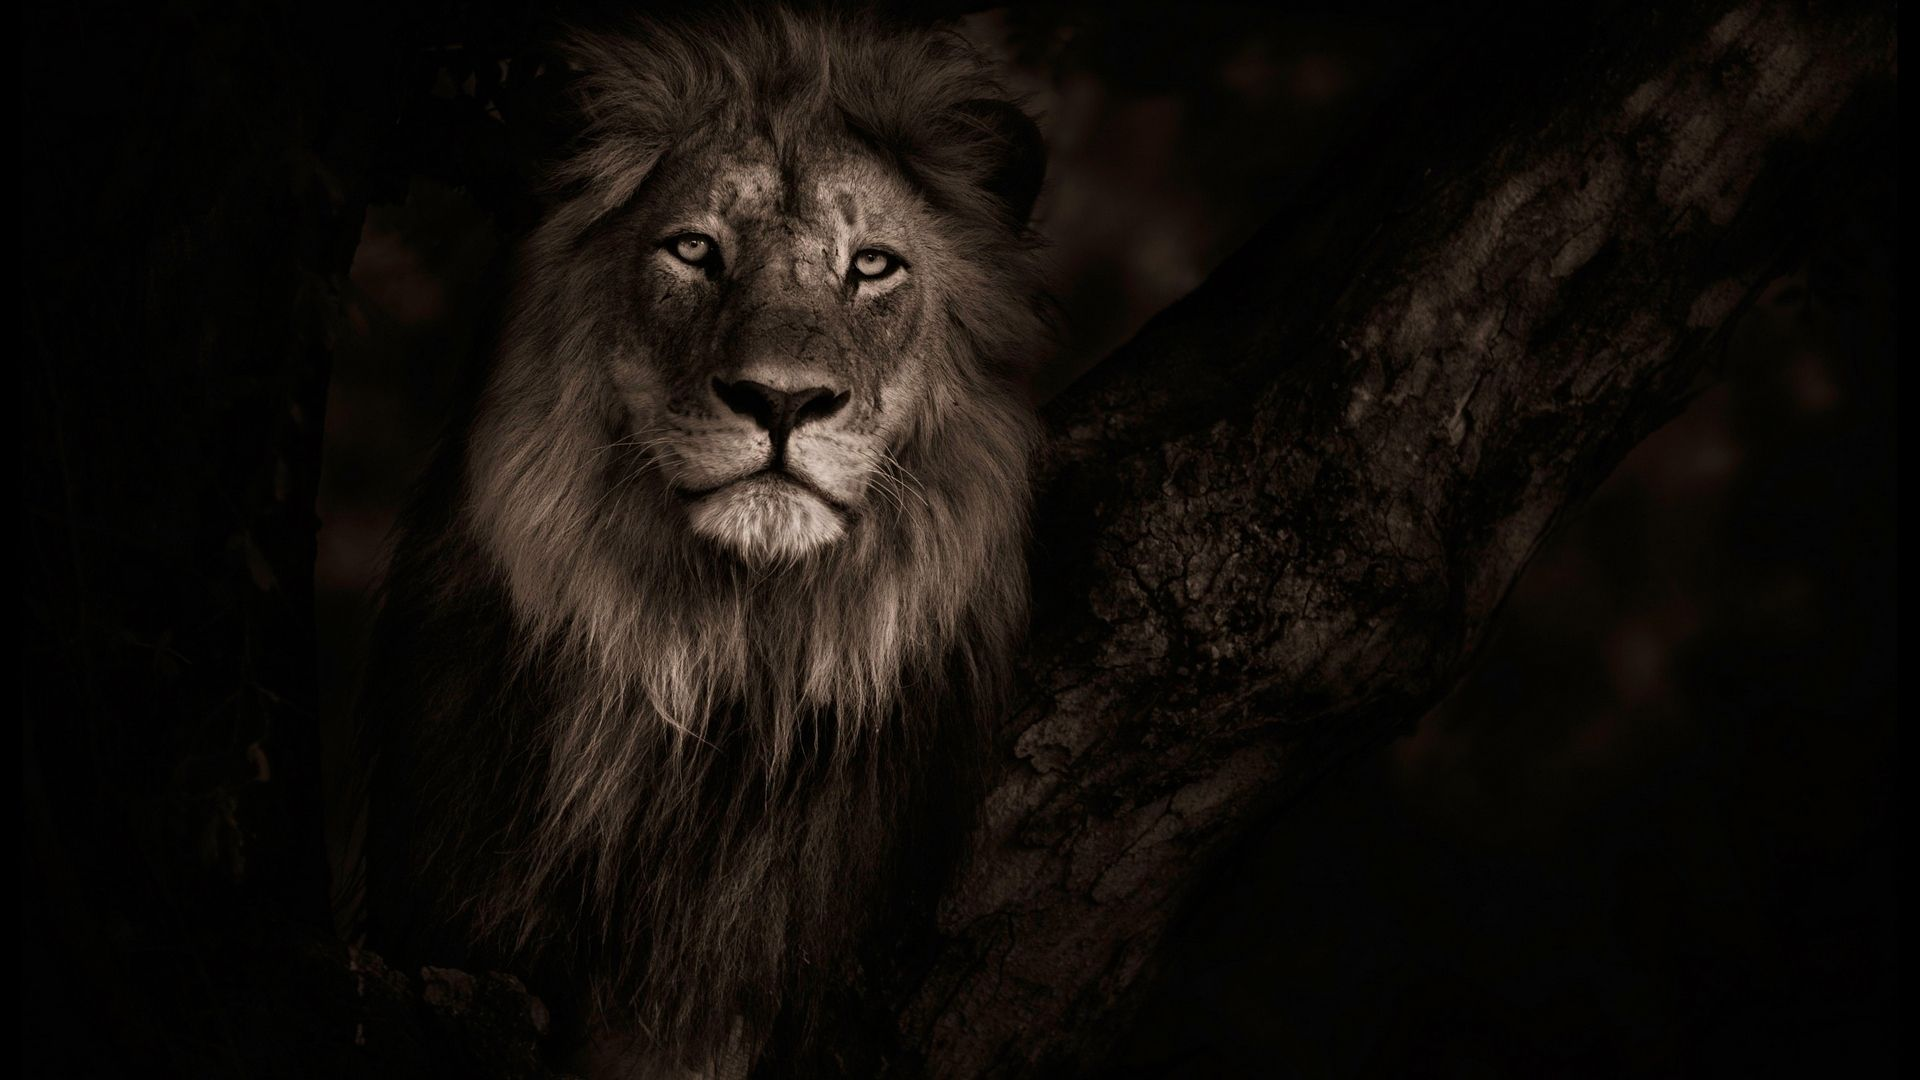 30 Lion Black And White Wallpapers Wallpaperboat